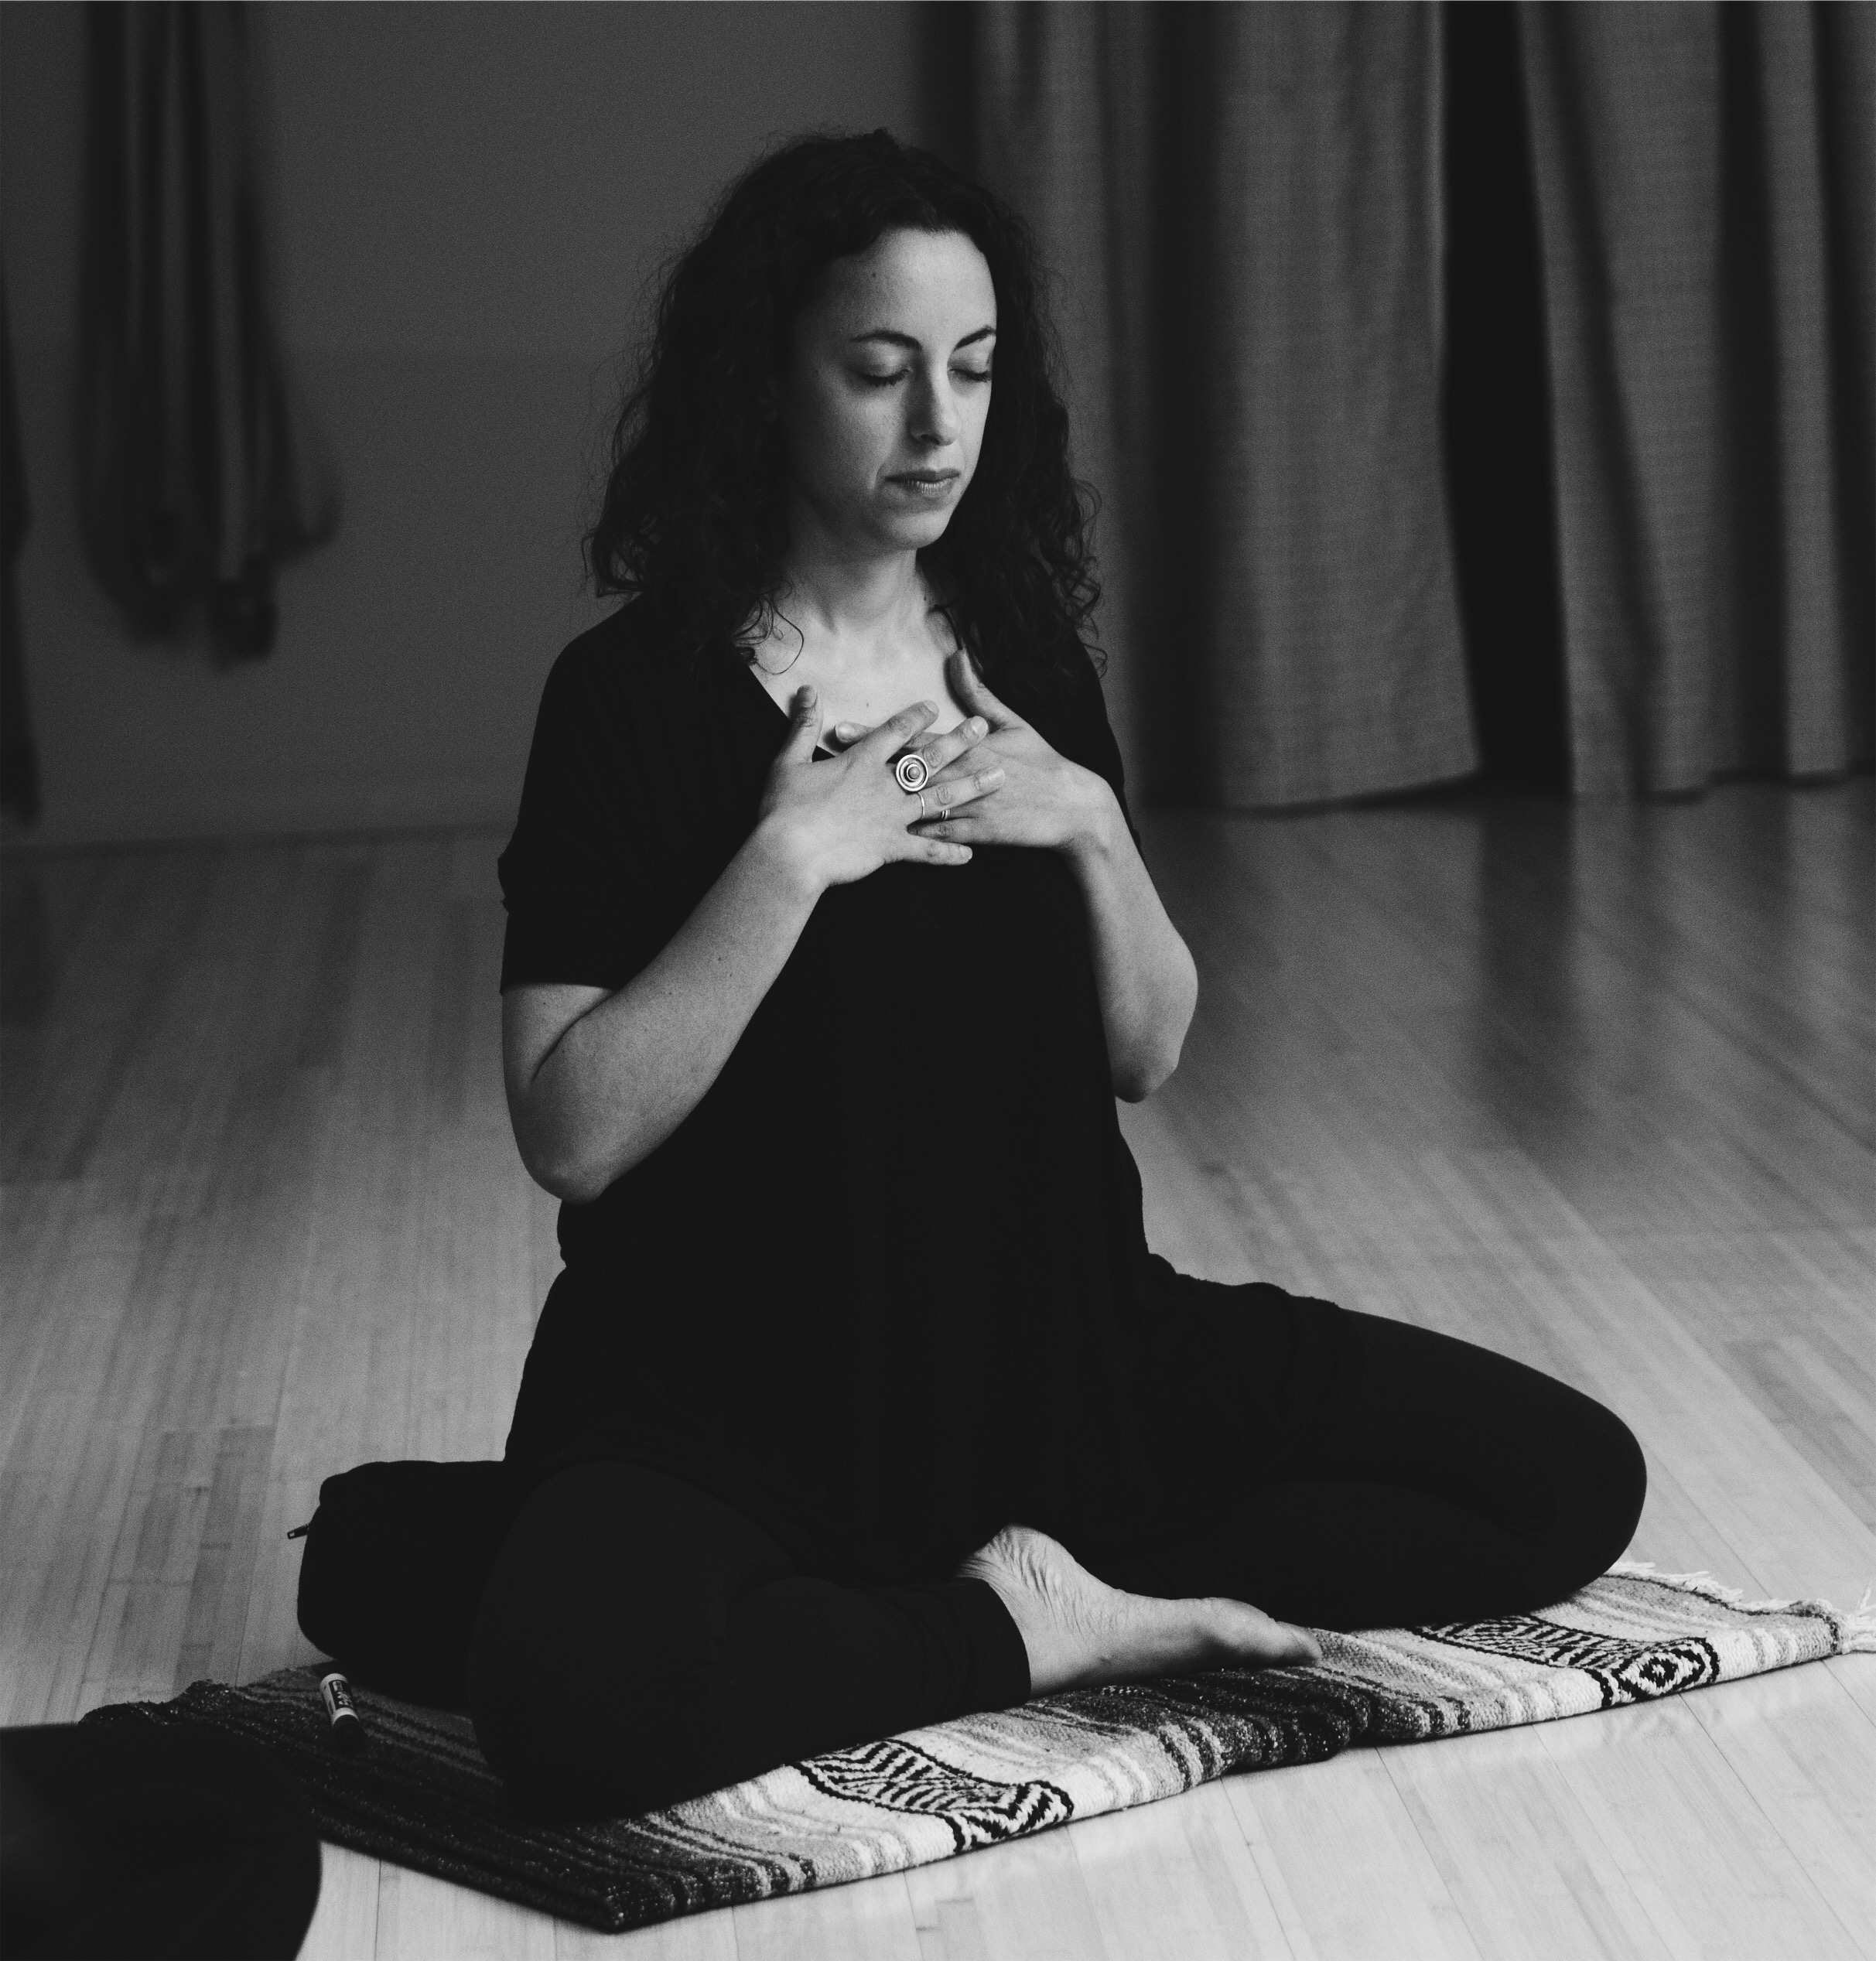 Sarah Capua - Sarah is a yoga therapist and meditation teacher, a student of Buddhism and classical yogic practice, and a caregiver. The heart of her practice is rooted in the tradition of T Krishnamacharya and TKV Desikachar, who emphasized individualized practice and believed that yoga should be adapted to foster self inquiry and personal transformation. She has been lucky to study deeply in this tradition at the Krishnamacharya Yoga Mandiram in Chennai, in training with her teacher Danielle Tarantola, and with many senior teachers of this lineage. She also studies meditation and Buddhist teachings with Michael Stone, as well as contemplative caregiving at New York Zen Center for Contemplative Care, where she serves as an end-of-life doula. Her contemplative practice is also linked to her artistic practice as co-director of contemporary dance company a+s works. She lives in Beacon, NY with her painter husband and teaches throughout NYC and the Hudson Valley.